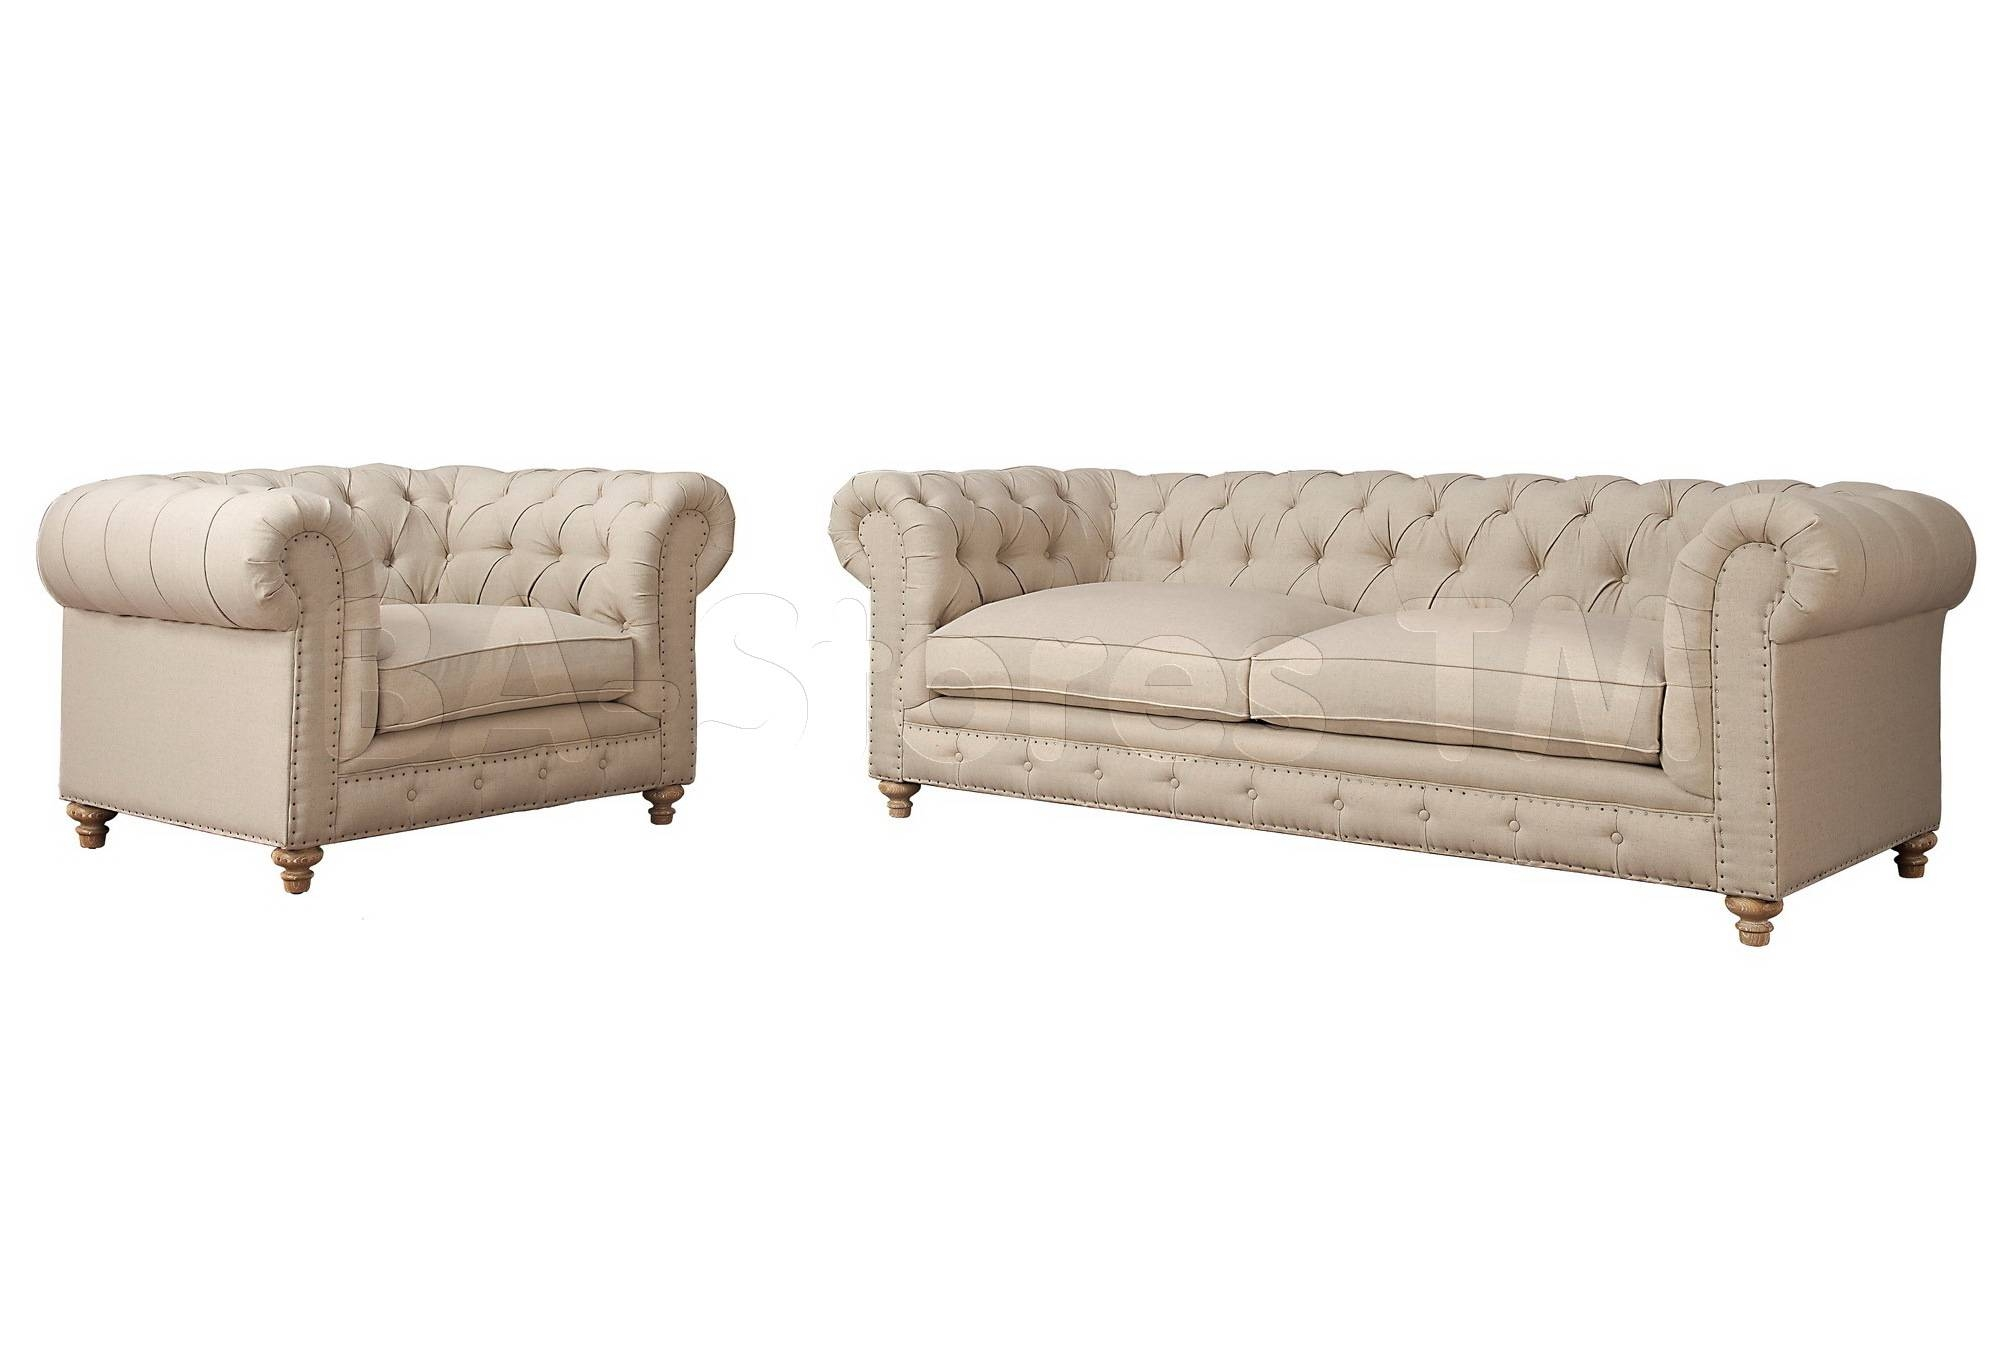 Sofas Center : 45 Unforgettable Grey Leather Sofa And Loveseat with Oxford Sofas (Image 28 of 30)